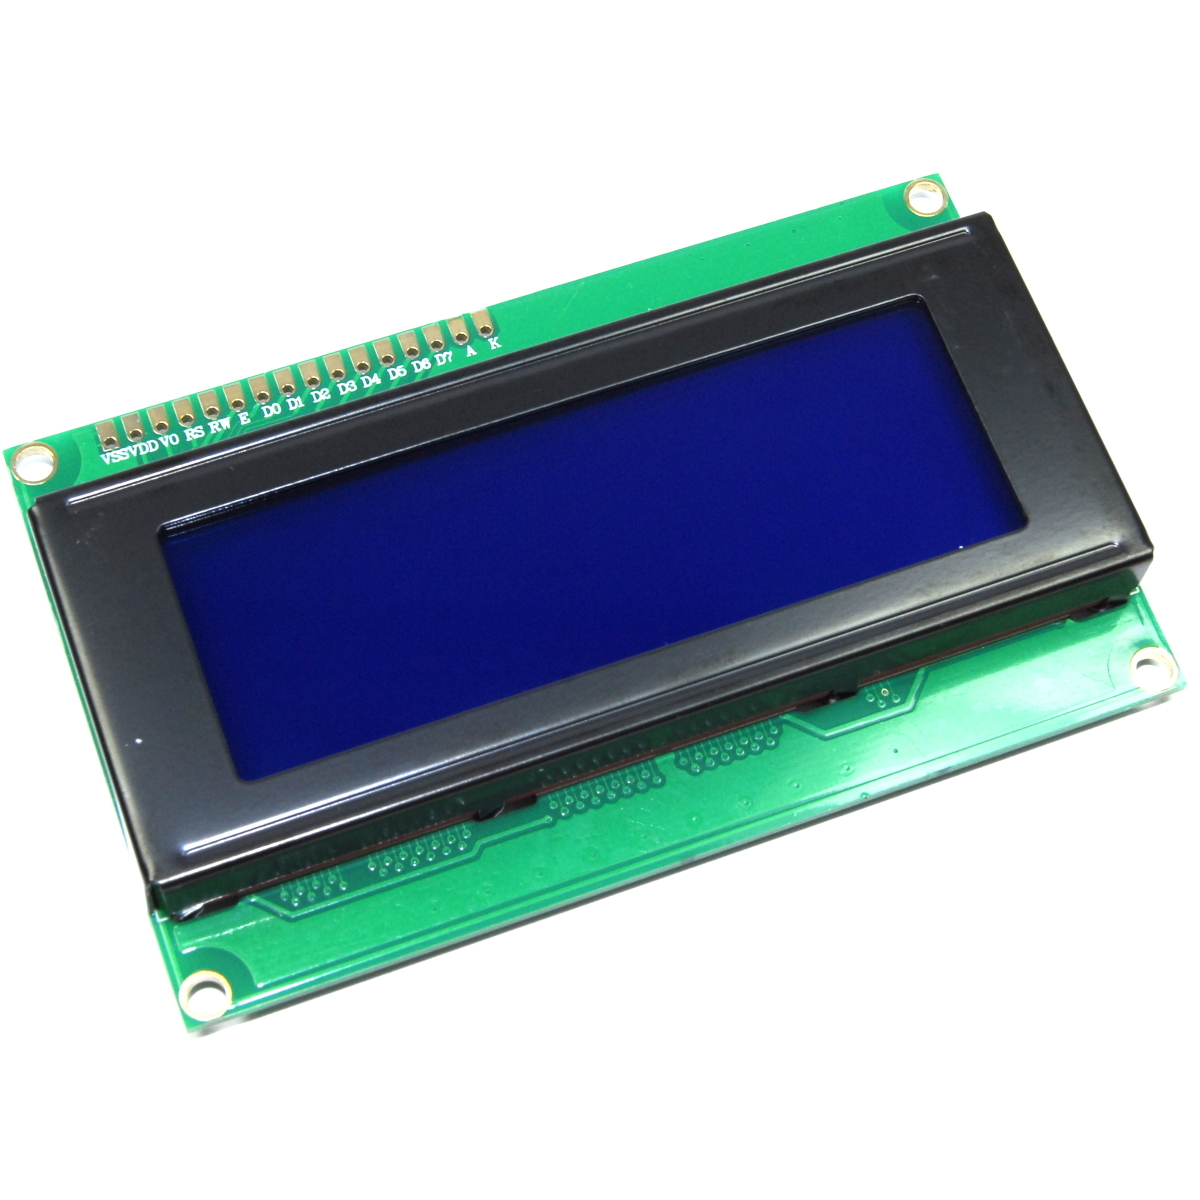 2004a 20x4 Blue Module Hd44780 Arduino Raspberry Pi Serial I2c Flux Cnc Lcd Character 2004 5v Backlight Images